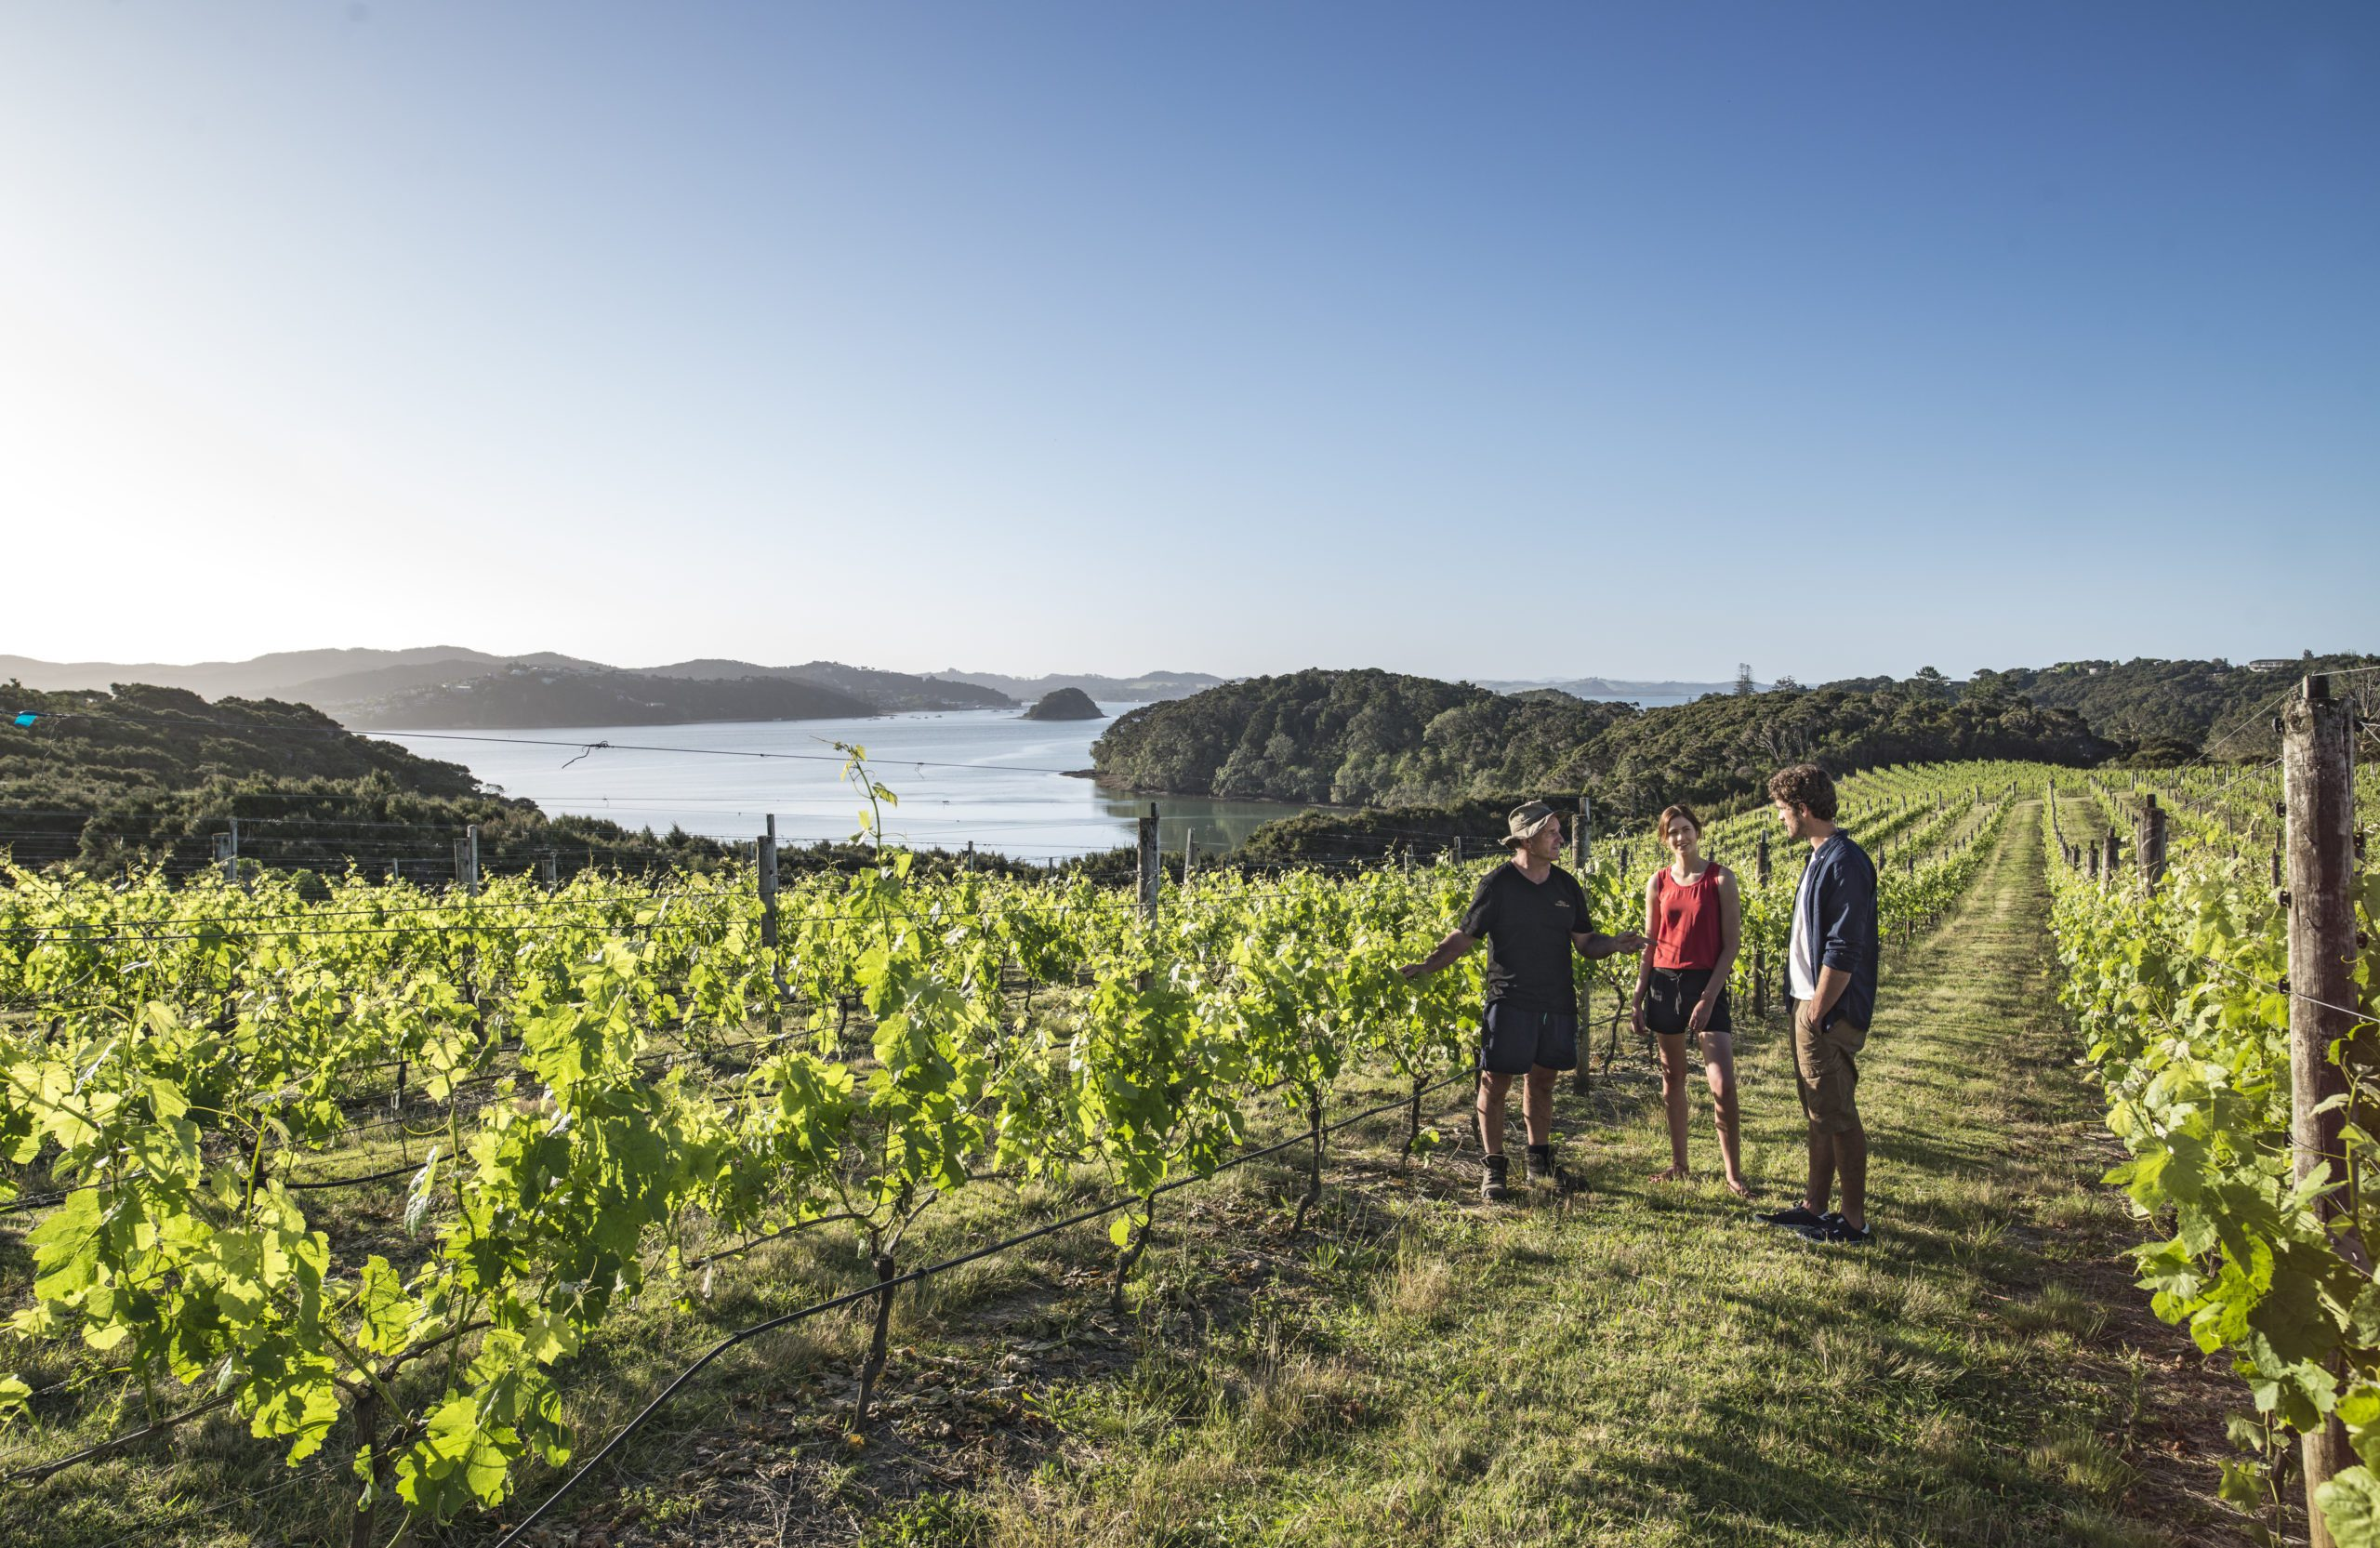 Walking through a vineyard in the Bay of Islands with the ocean in the background.